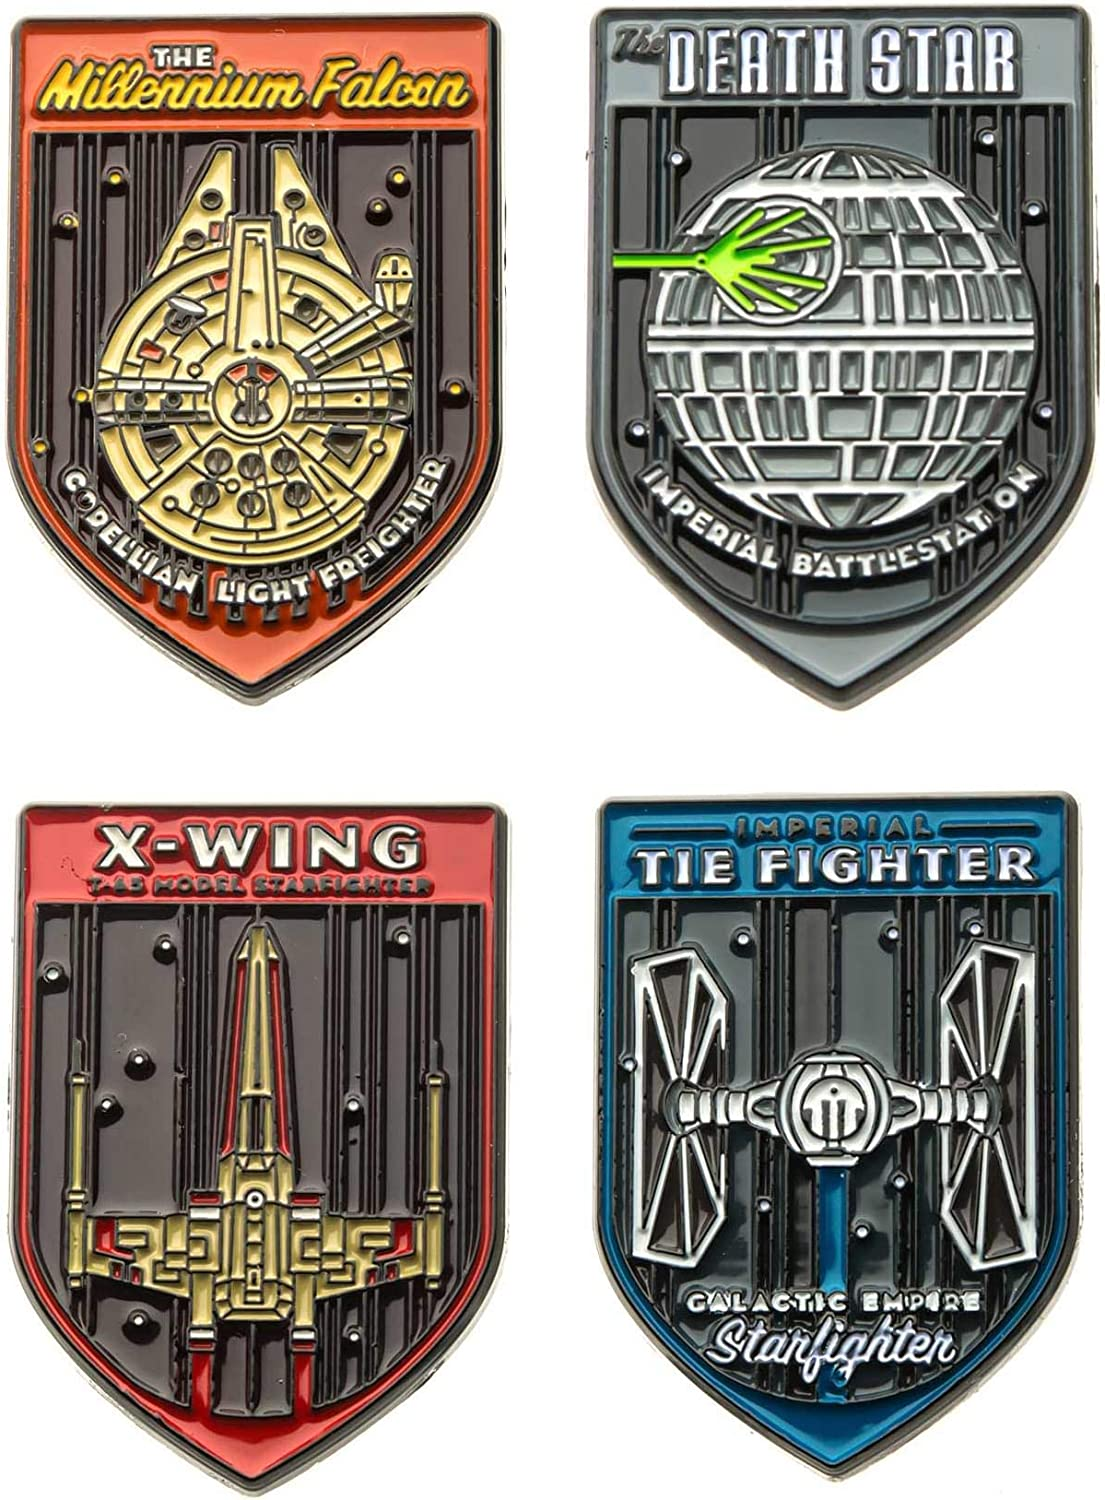 Star Wars Jewelry Unisex Adult Fighters Space Ships Base Metal Lapel Pin Set (4 piece), Multi Color, One Size